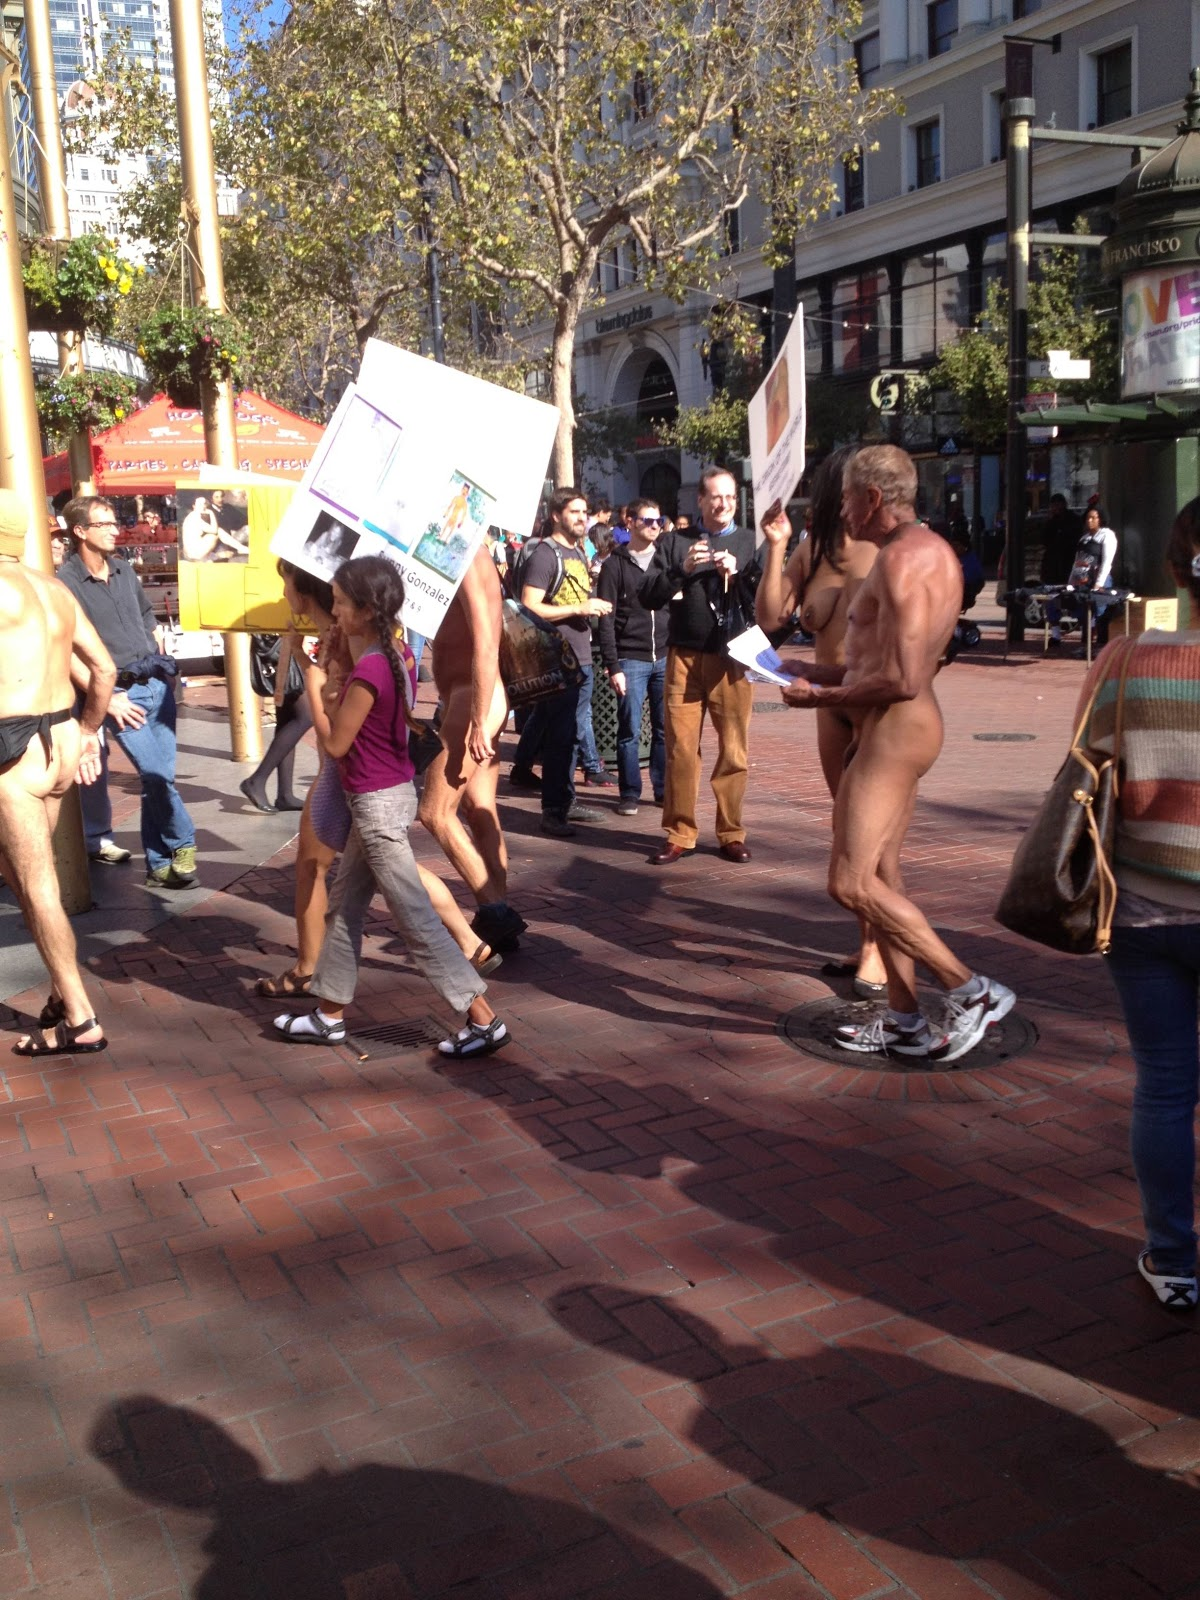 will protest about nudity: